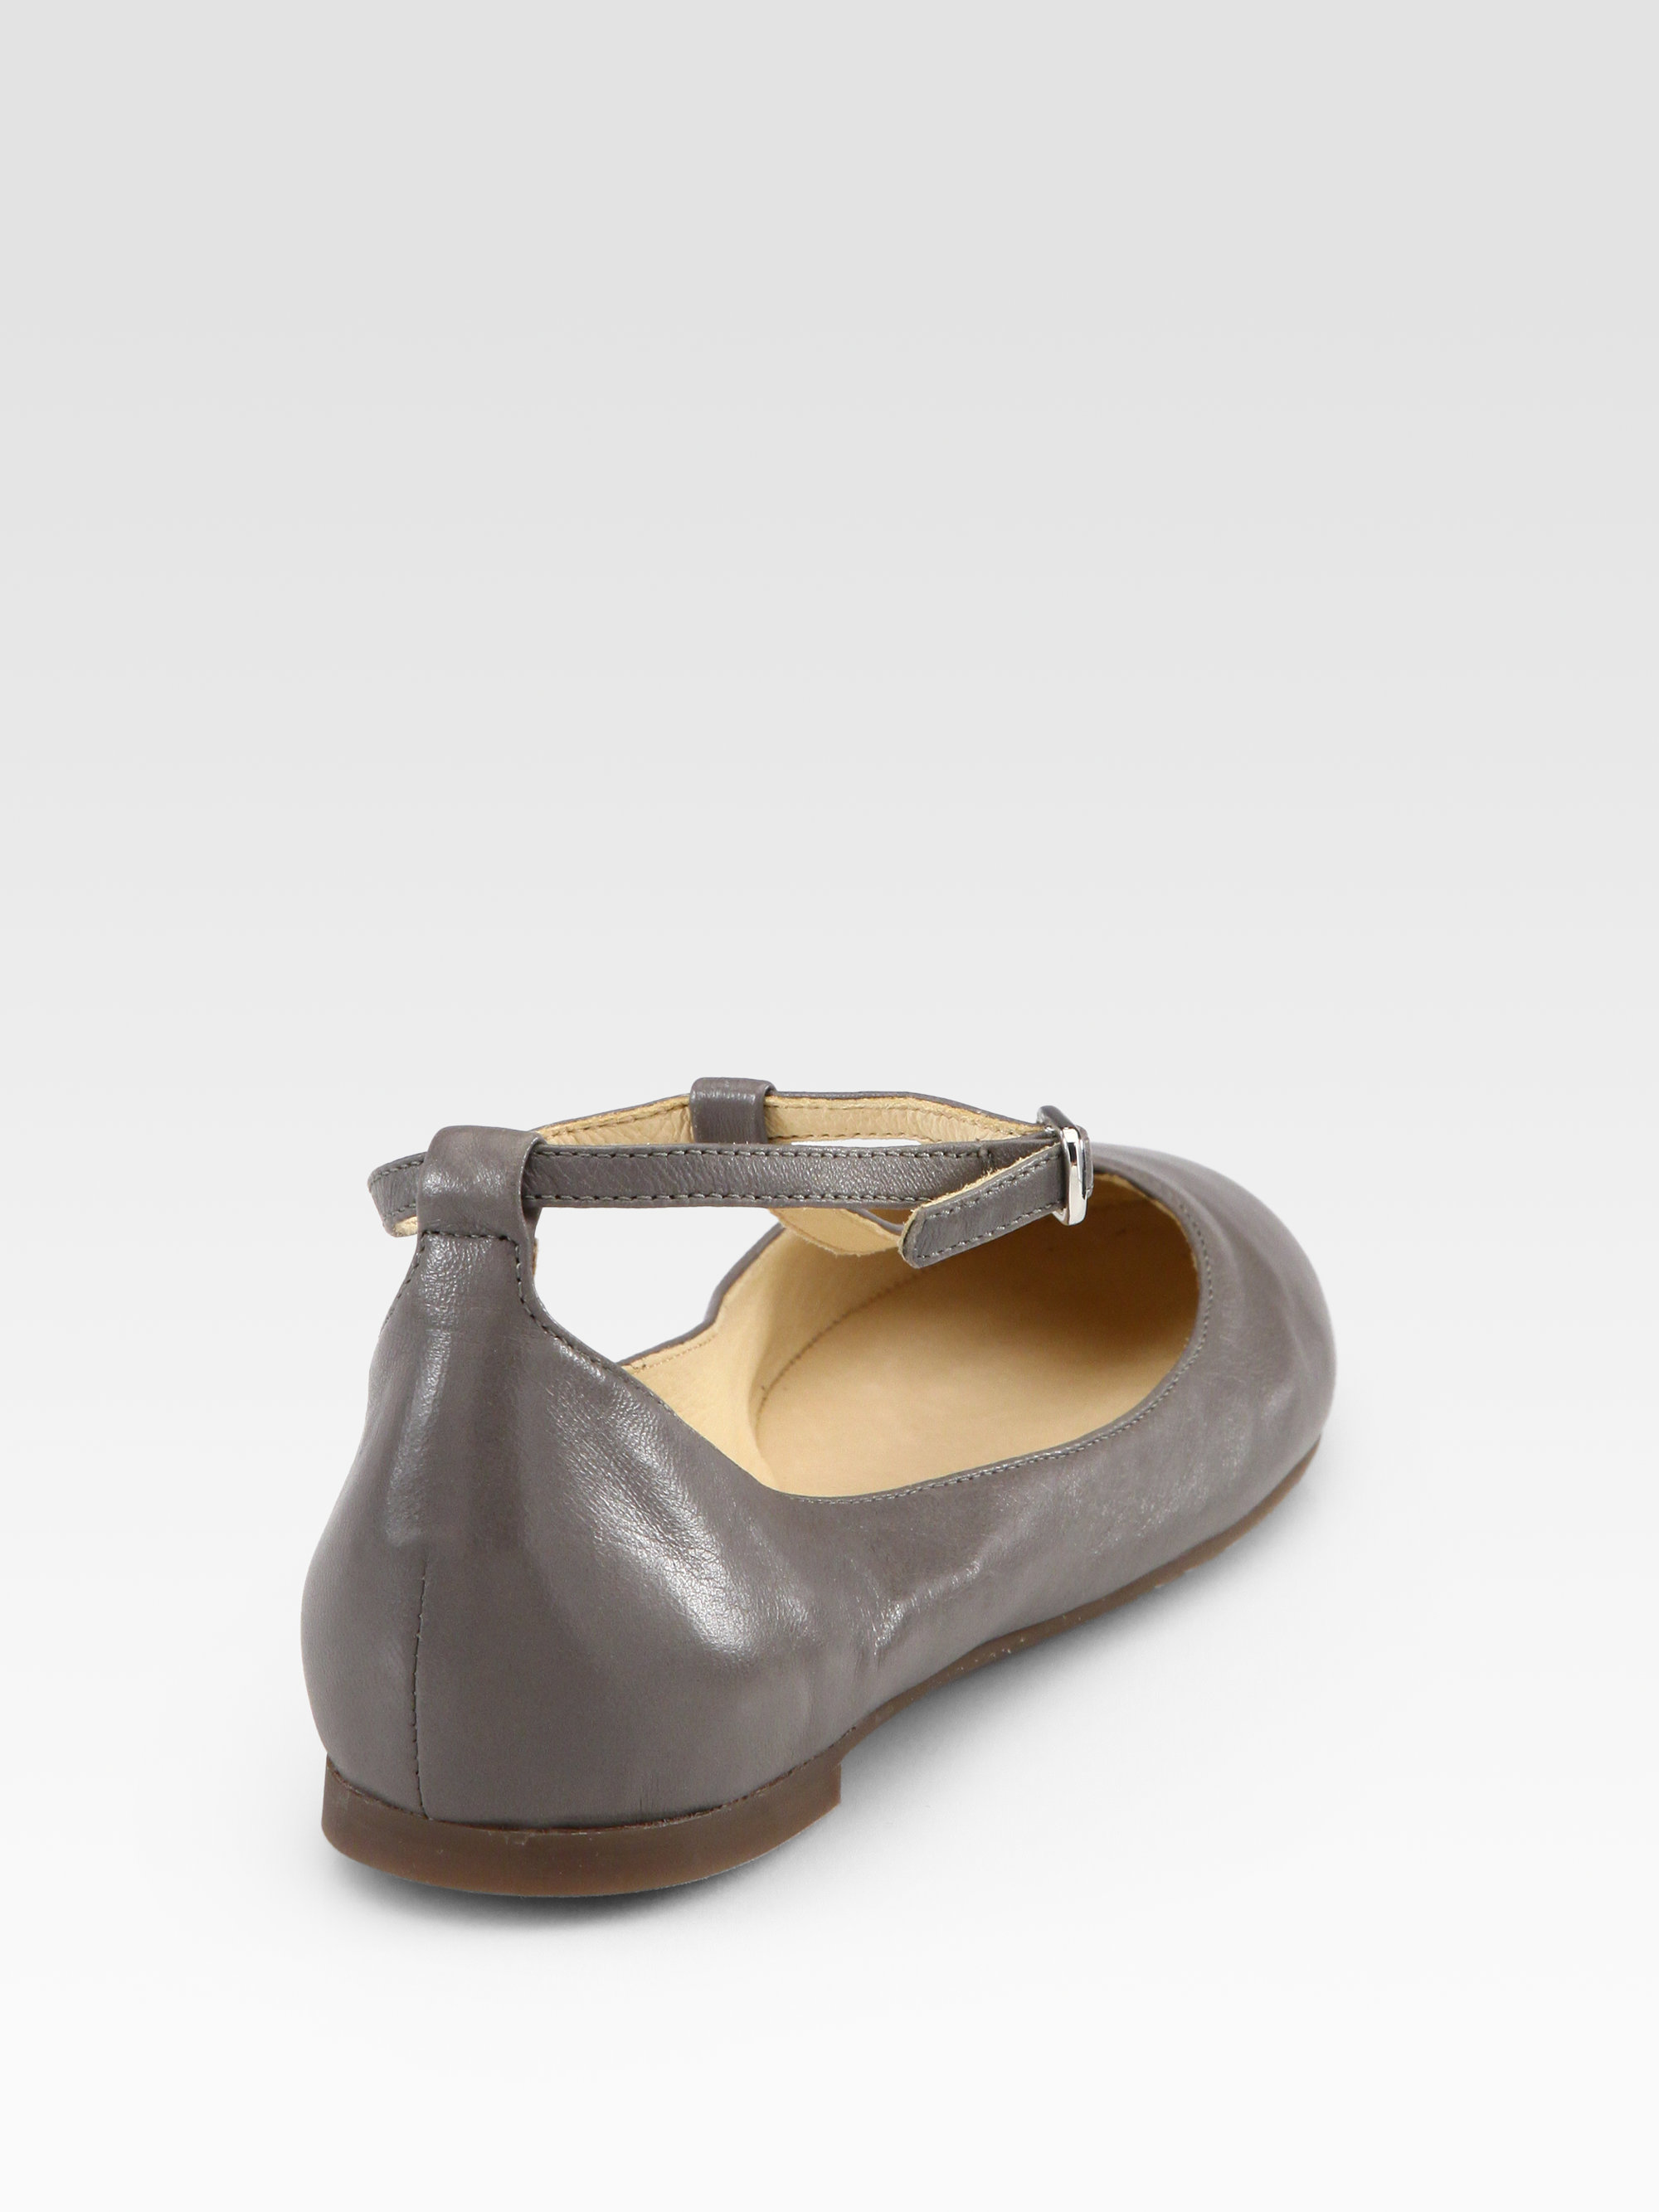 buy cheap discount Chloé Leather T-Strap Flats with paypal cheap online buy cheap reliable tvG71m